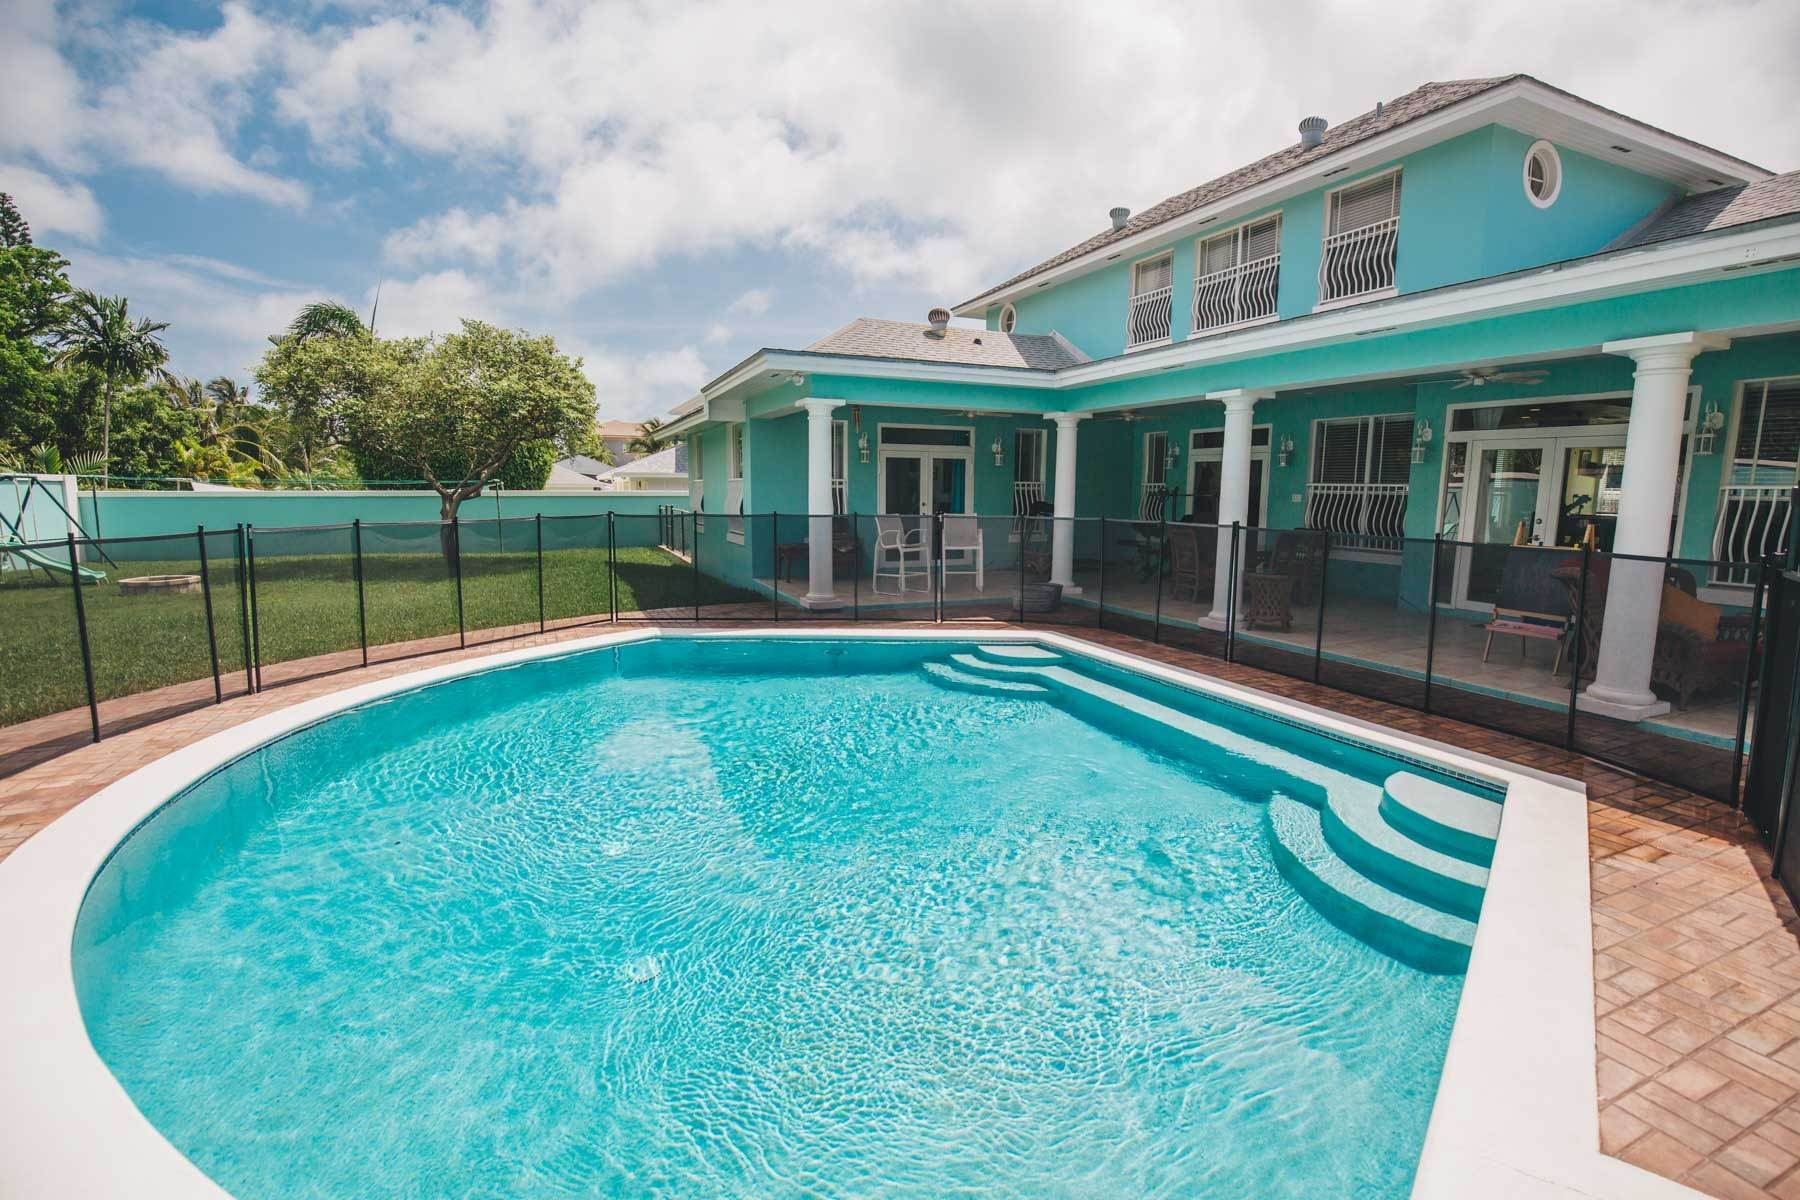 Single Family Homes for Sale at 12 Brigadoon Estates, New Providence - MLS 38243 Brigadoon Estates, Nassau And Paradise Island, Bahamas